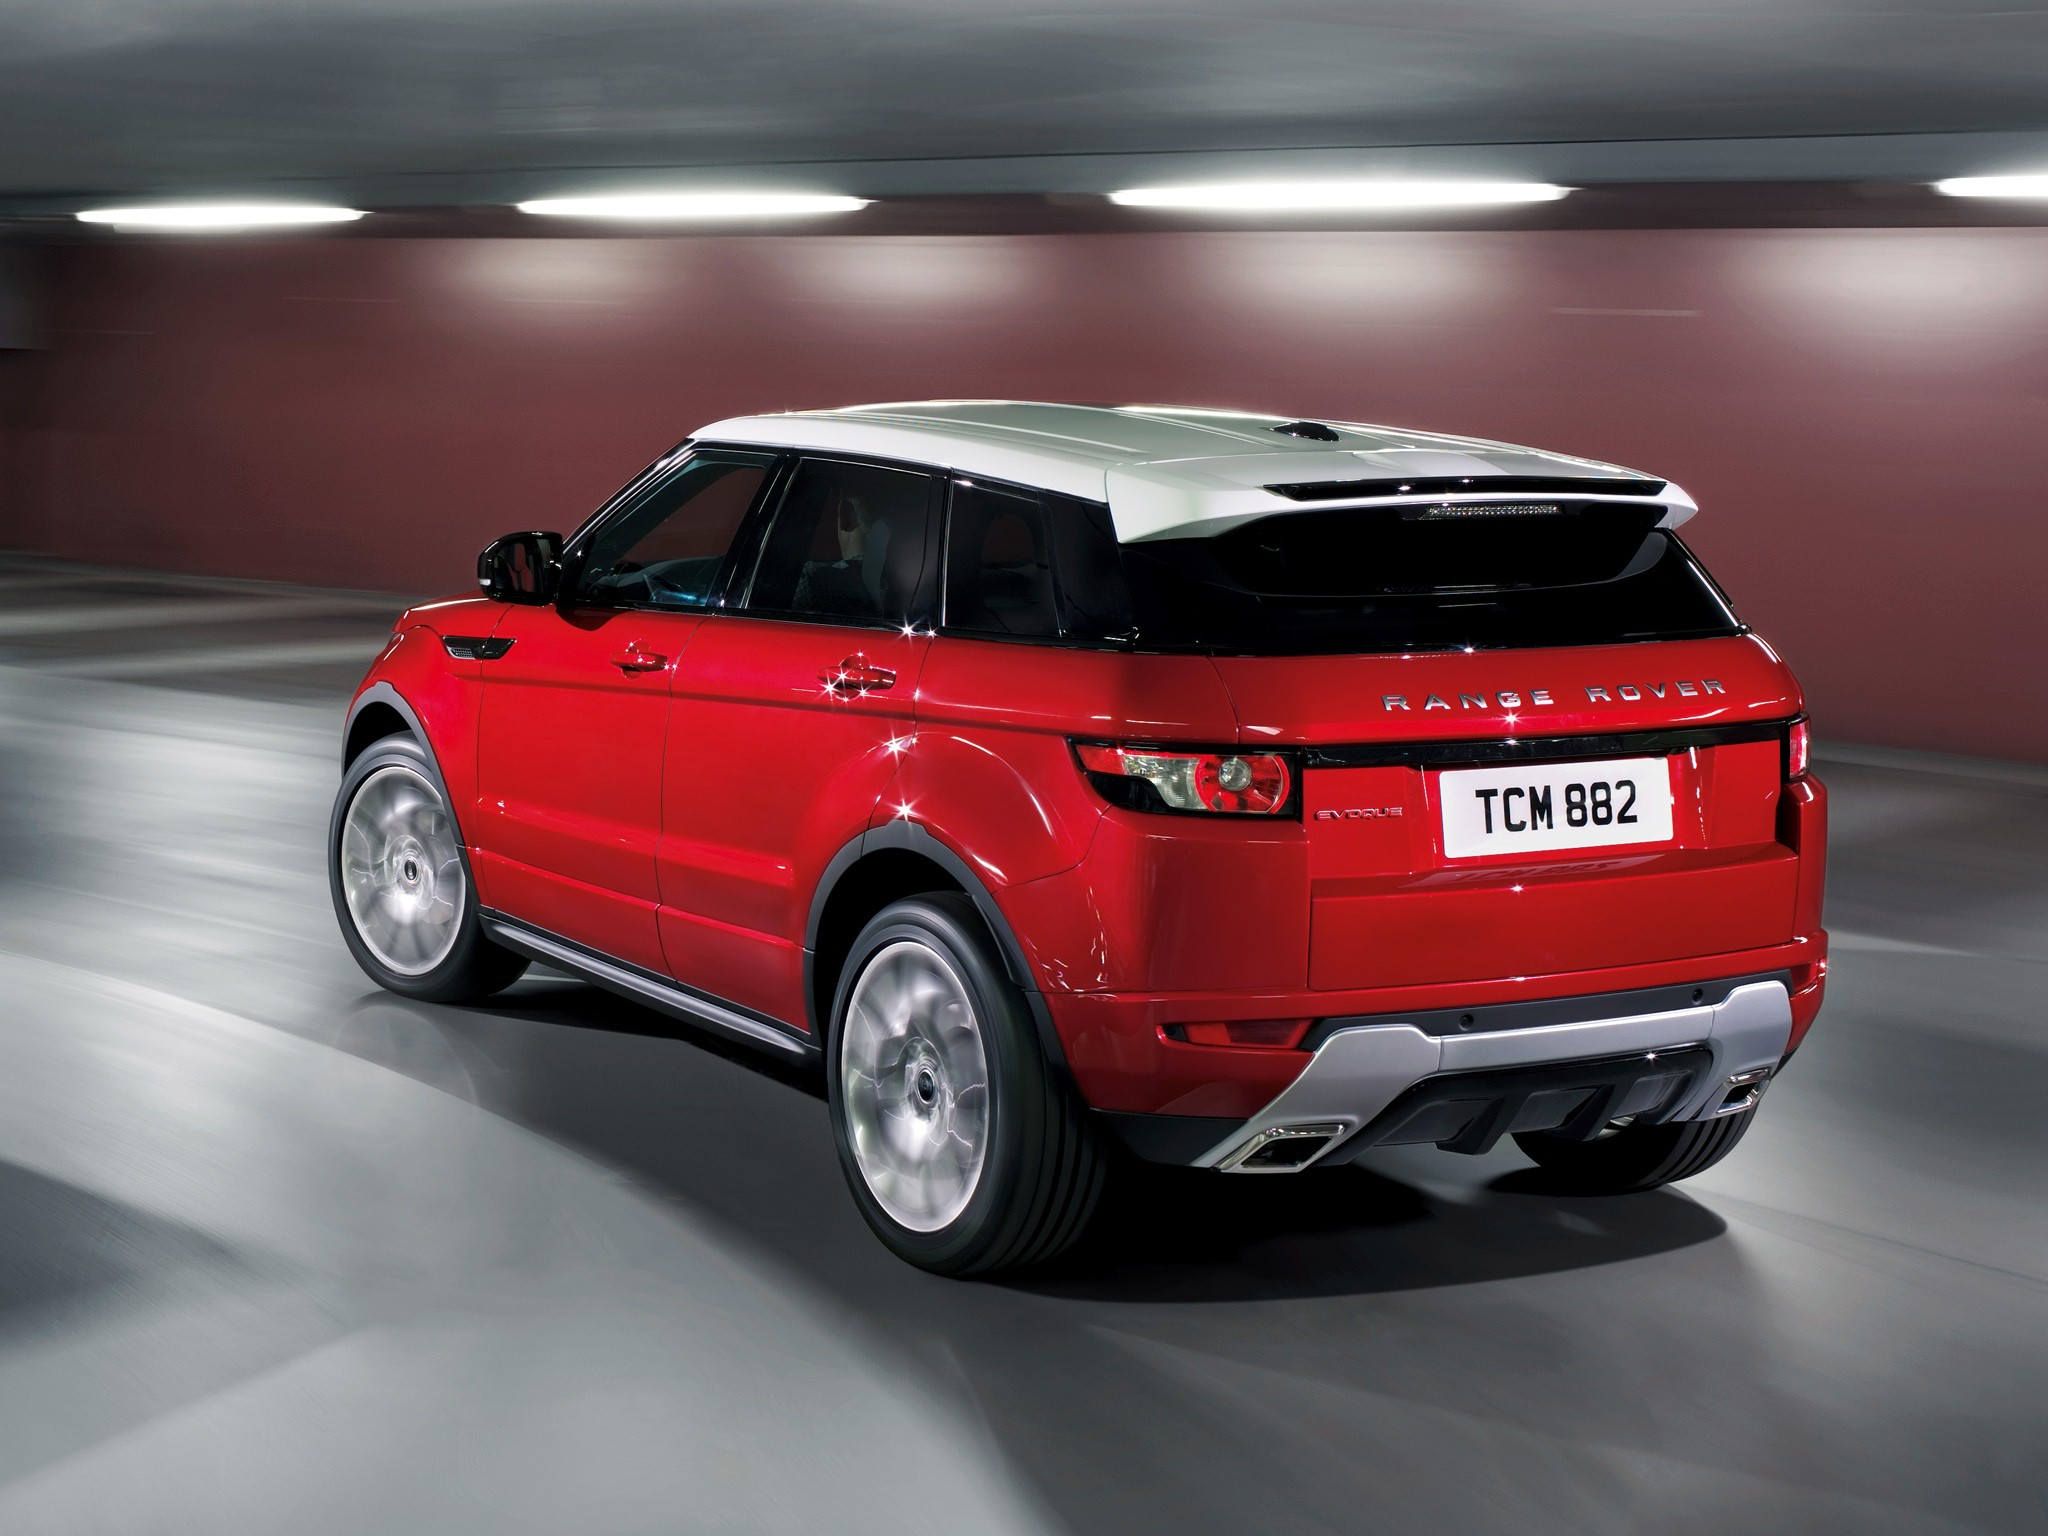 land rover range rover evoque 5 door specs photos 2011. Black Bedroom Furniture Sets. Home Design Ideas